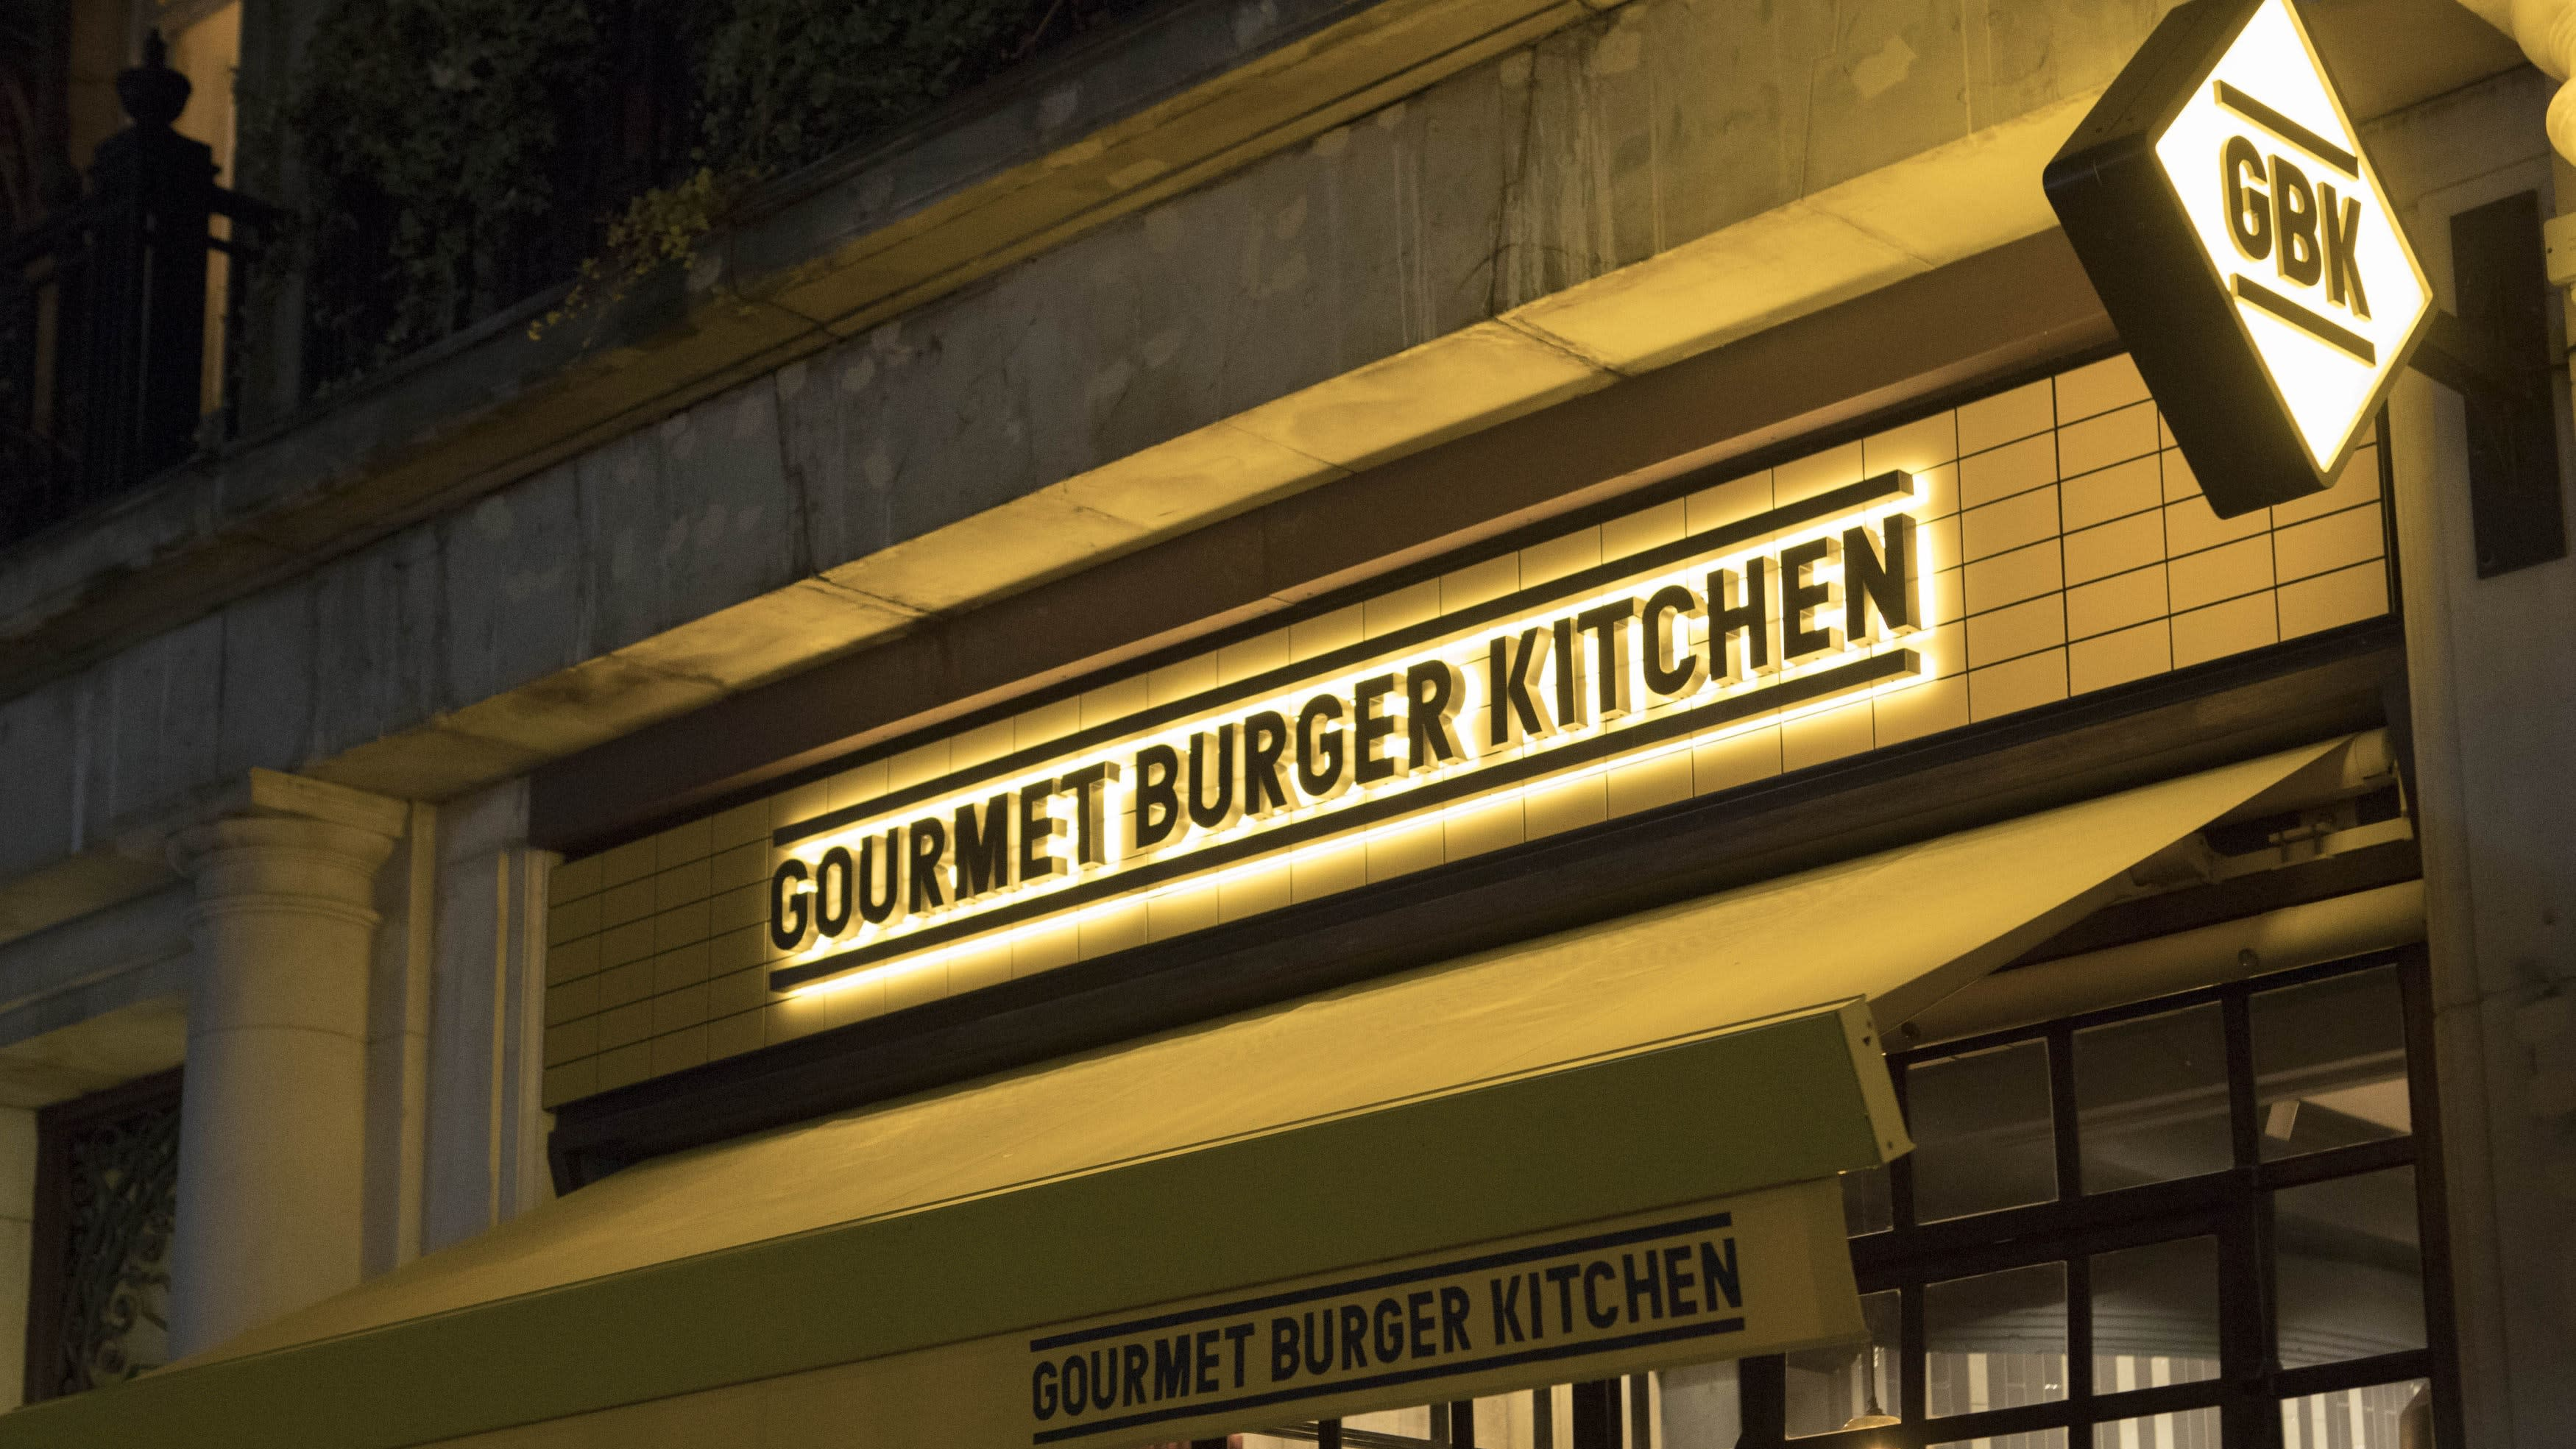 Gourmet Burger Kitchen losses weighed down by raft of restaurant closures - Yahoo Finance UK